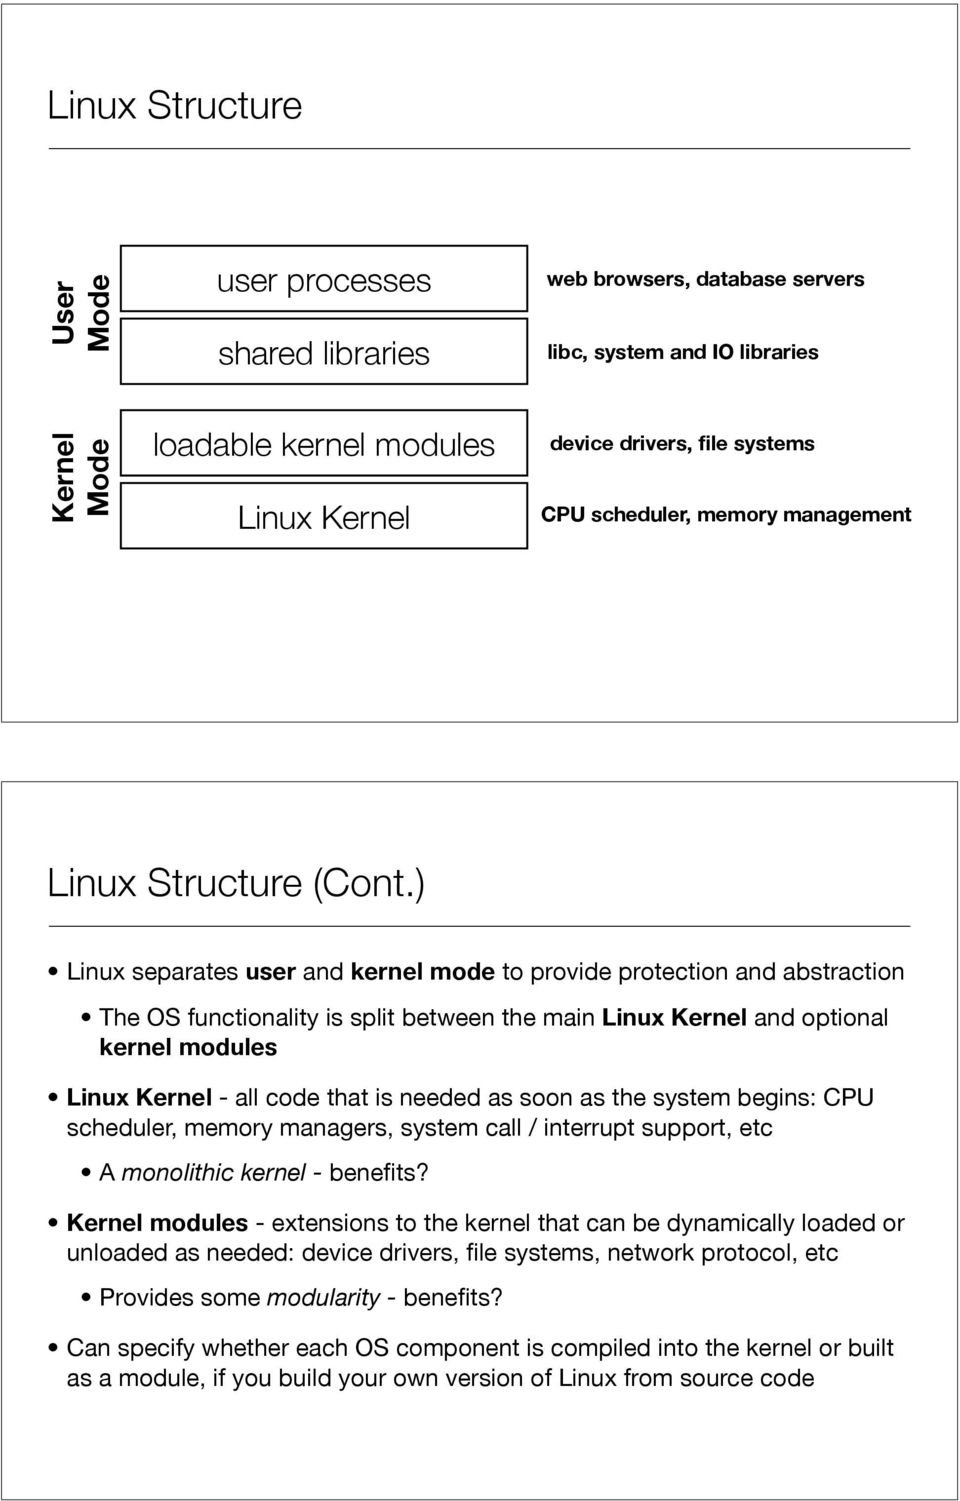 ) Linux separates user and kernel mode to provide protection and abstraction The OS functionality is split between the main Linux Kernel and optional kernel modules Linux Kernel - all code that is